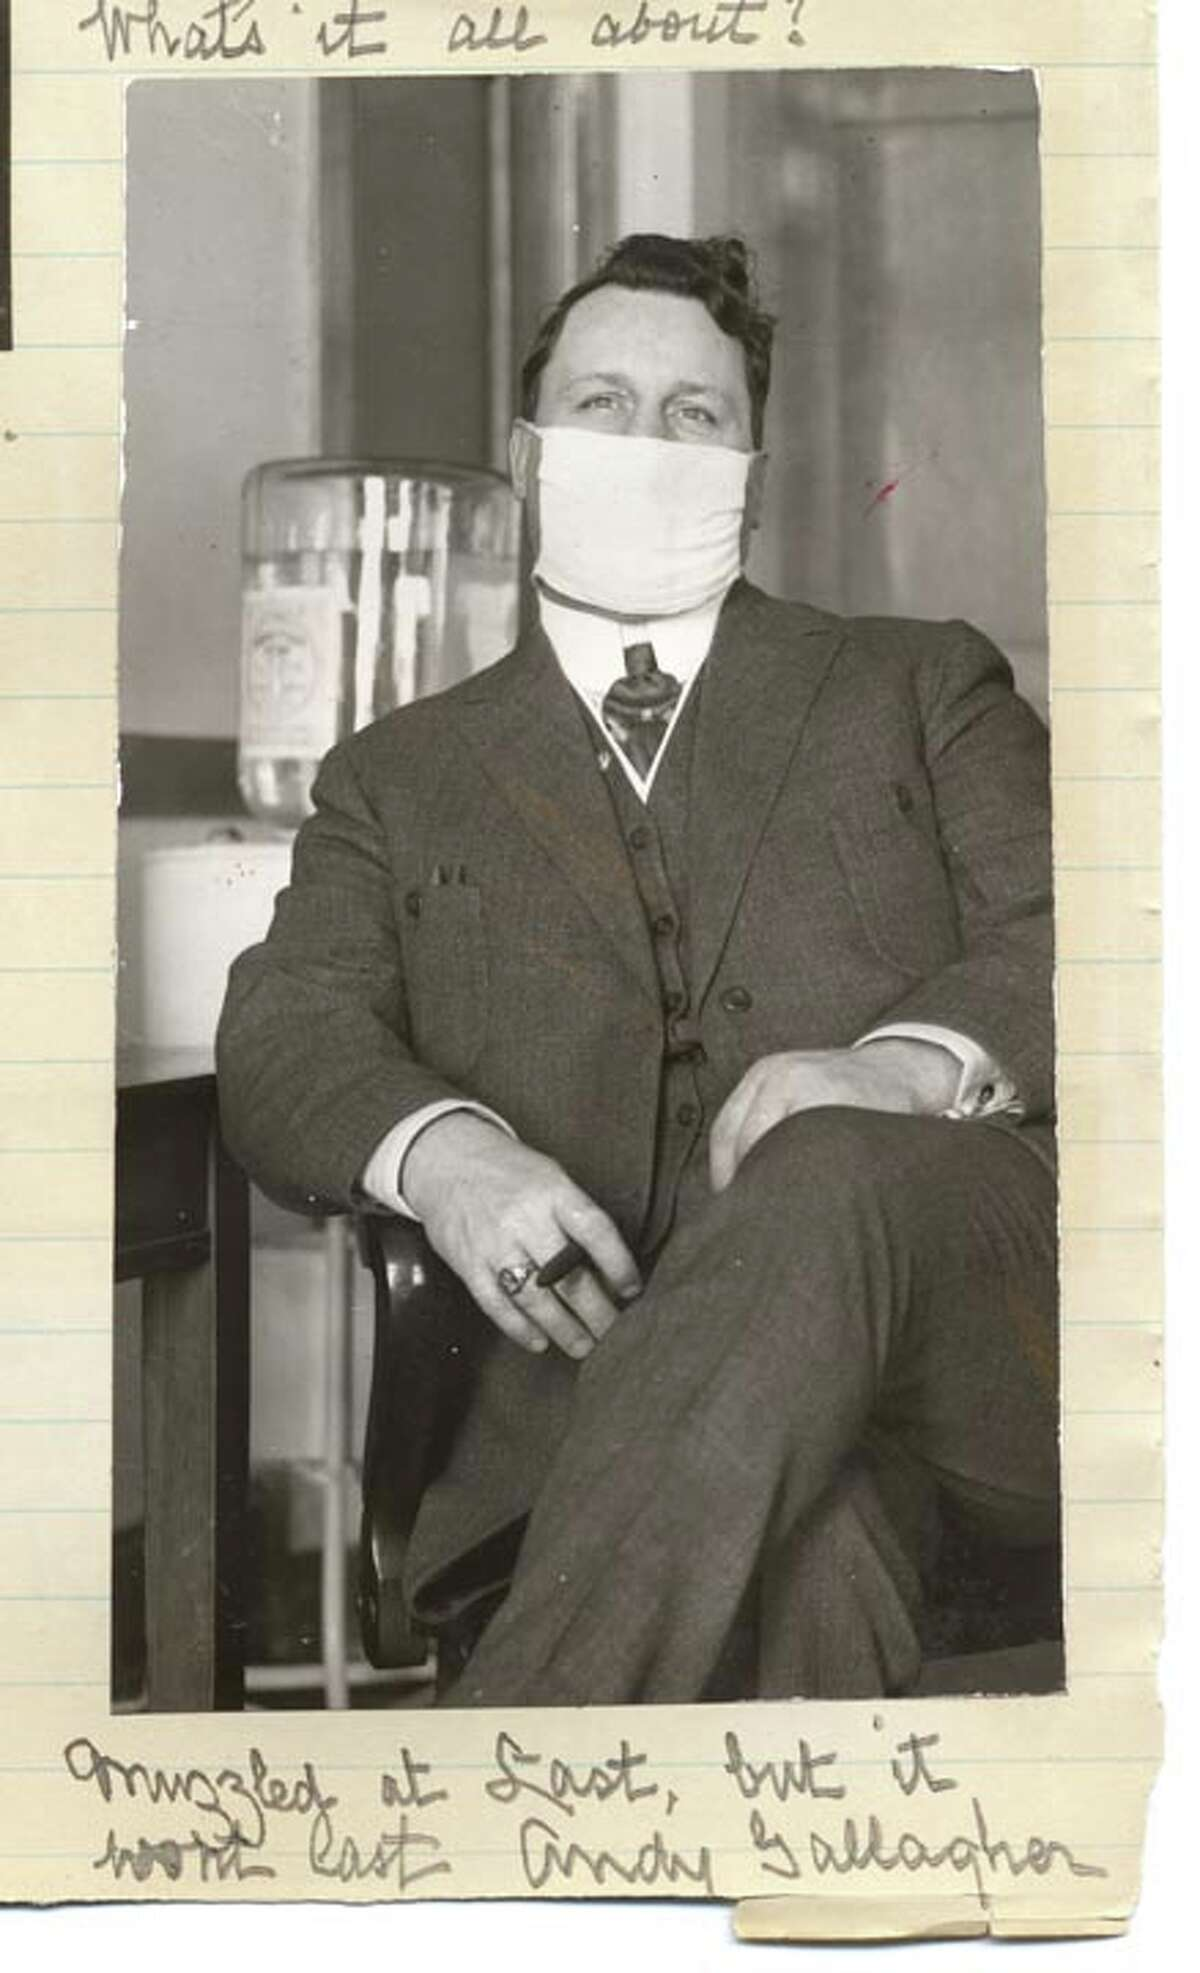 San Francisco Supervisor Andrew Gallagher introduced the second mask ordinance that finally passed in mid-January 1919. The quote under the photo reads,